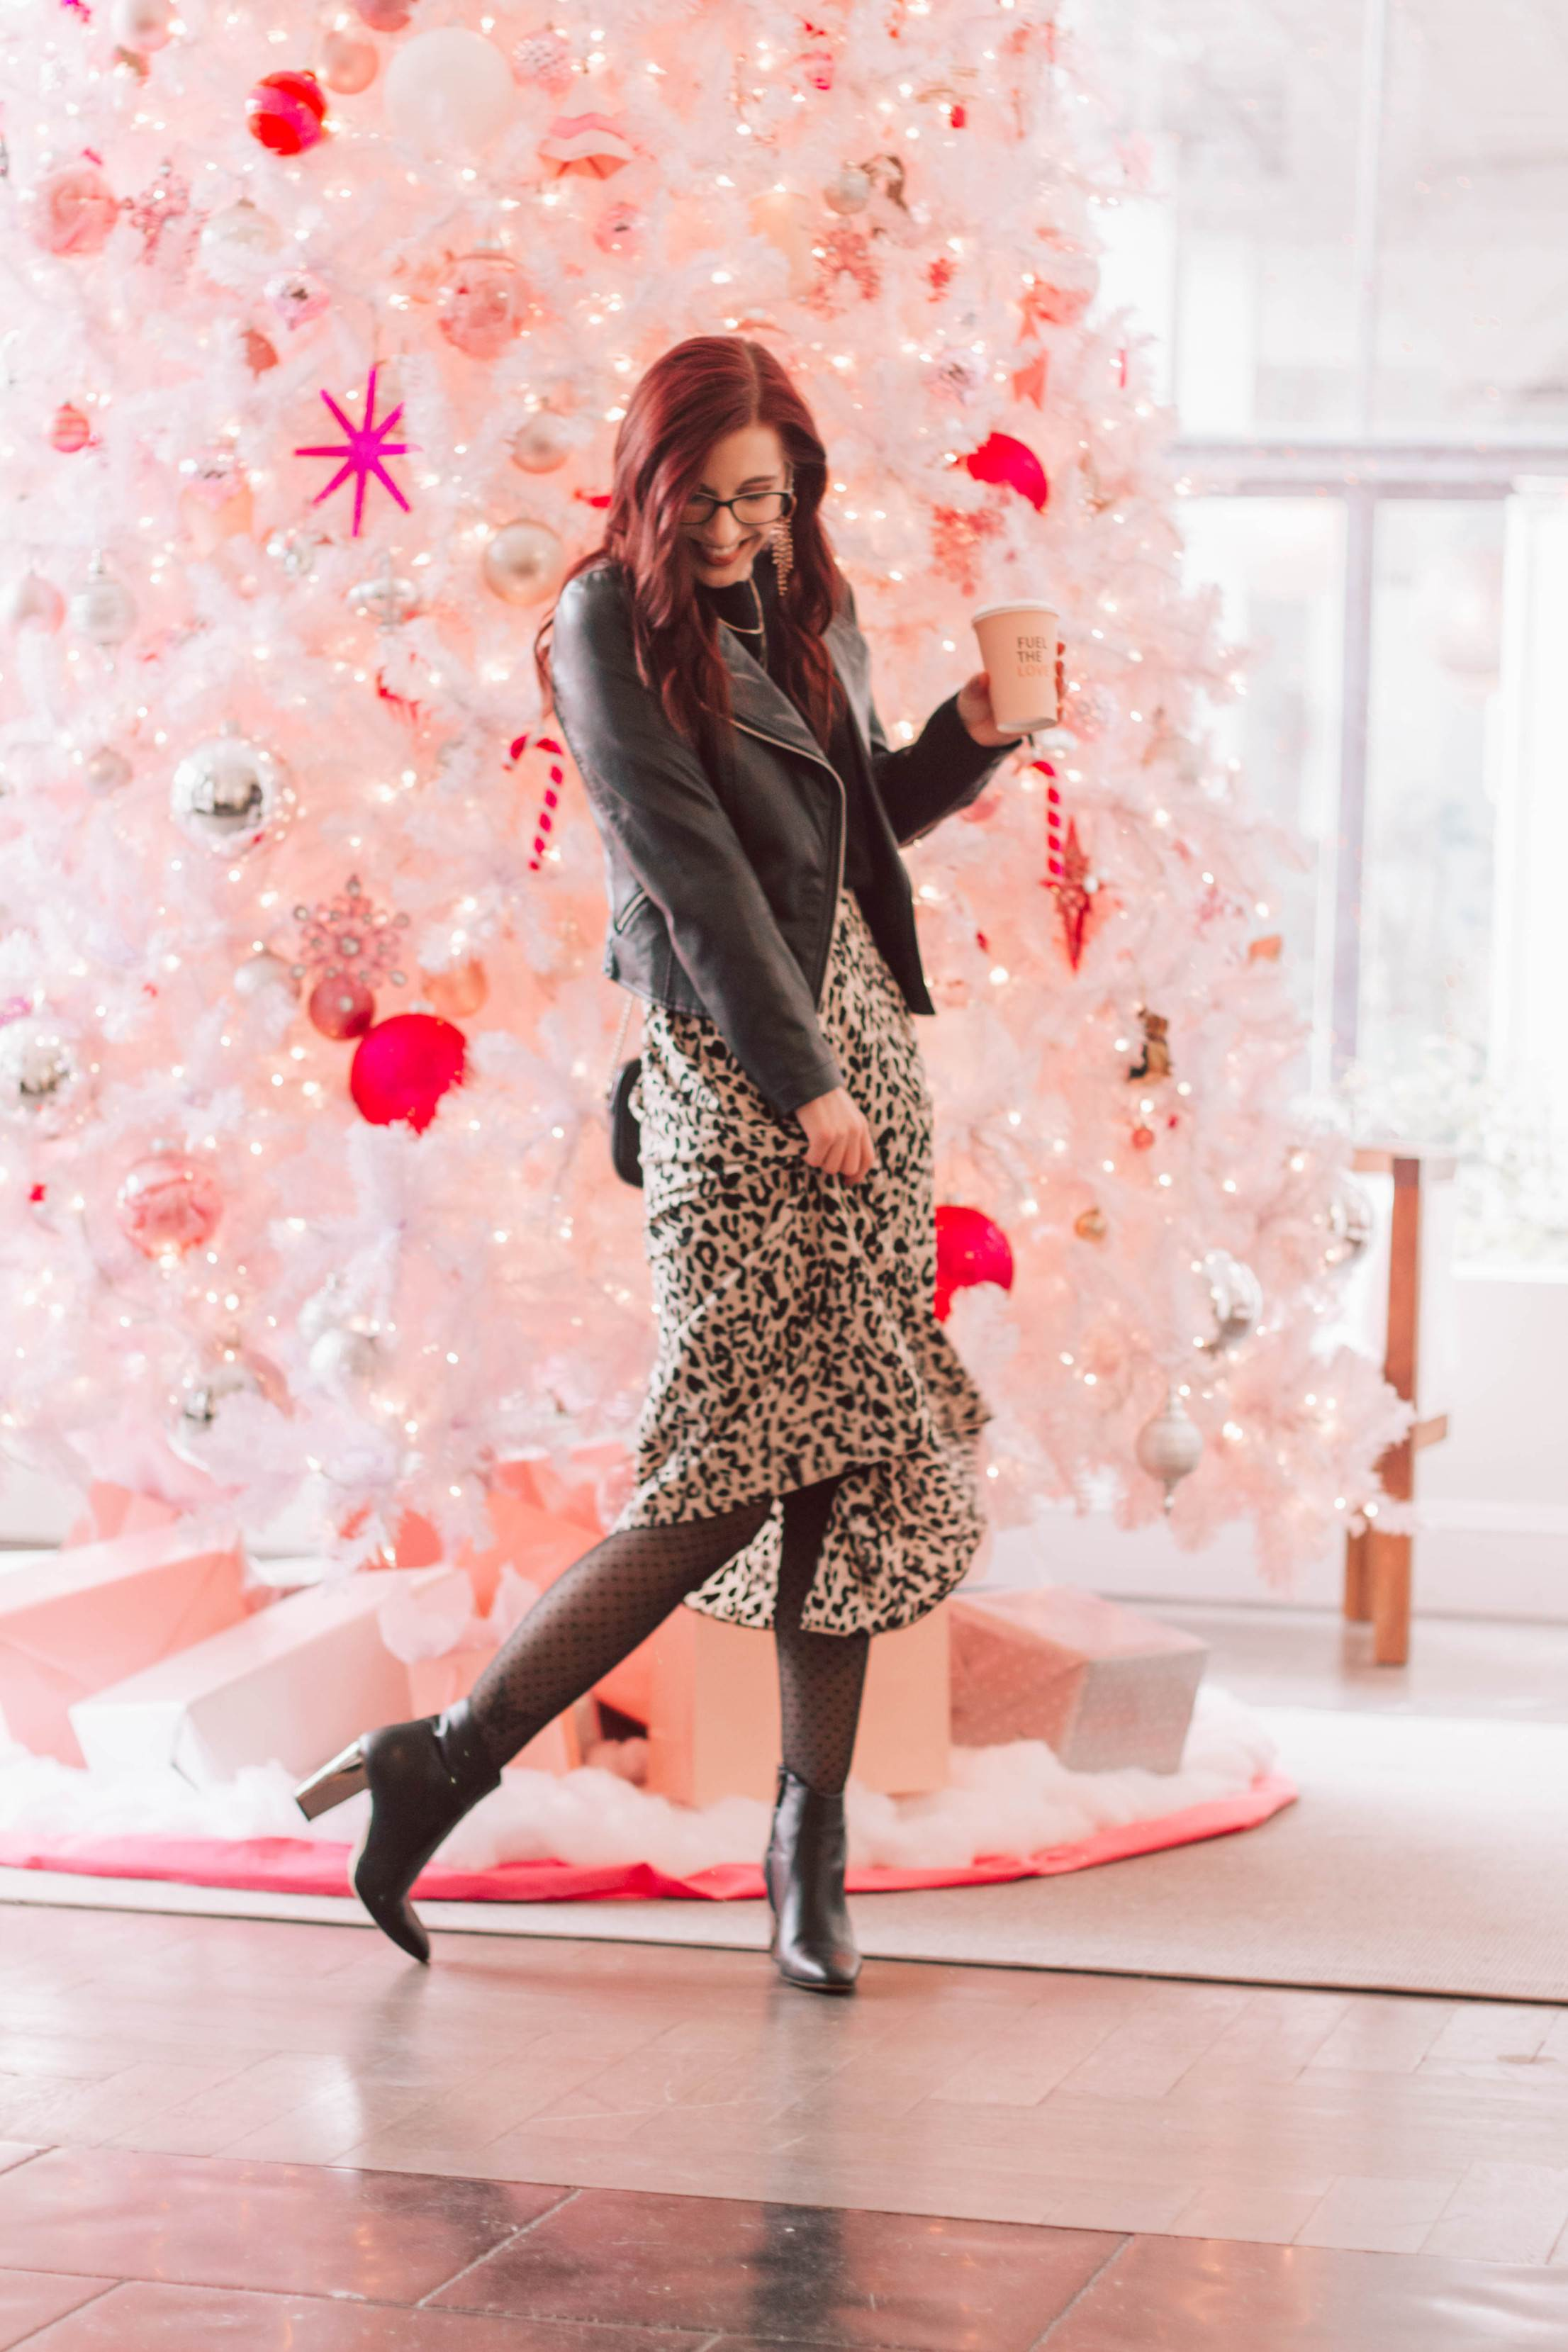 Styling Leopard Print for Christmas